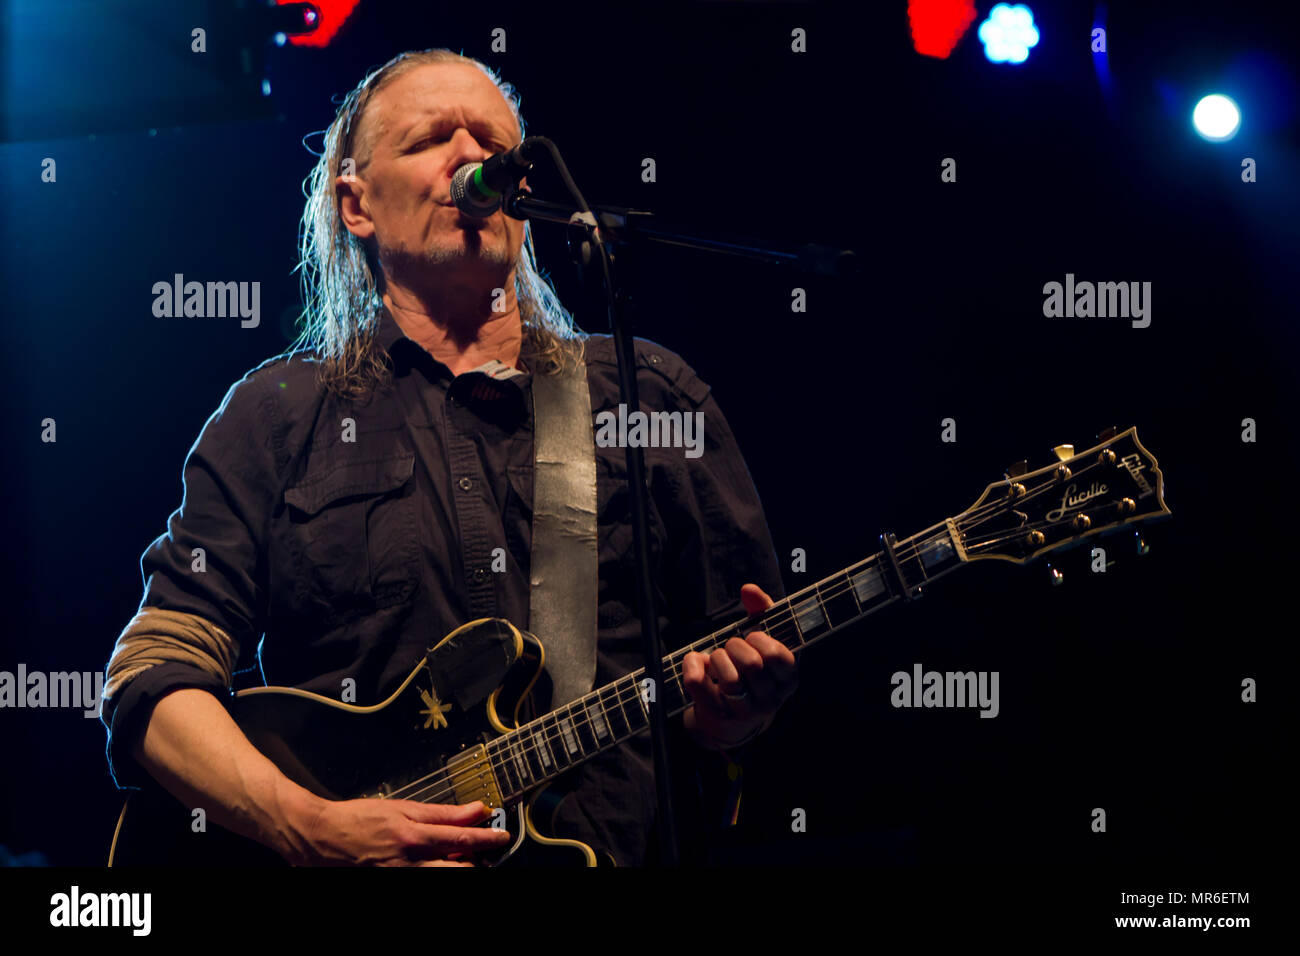 Rock band SWANS performs live concert at music festival - Stock Image